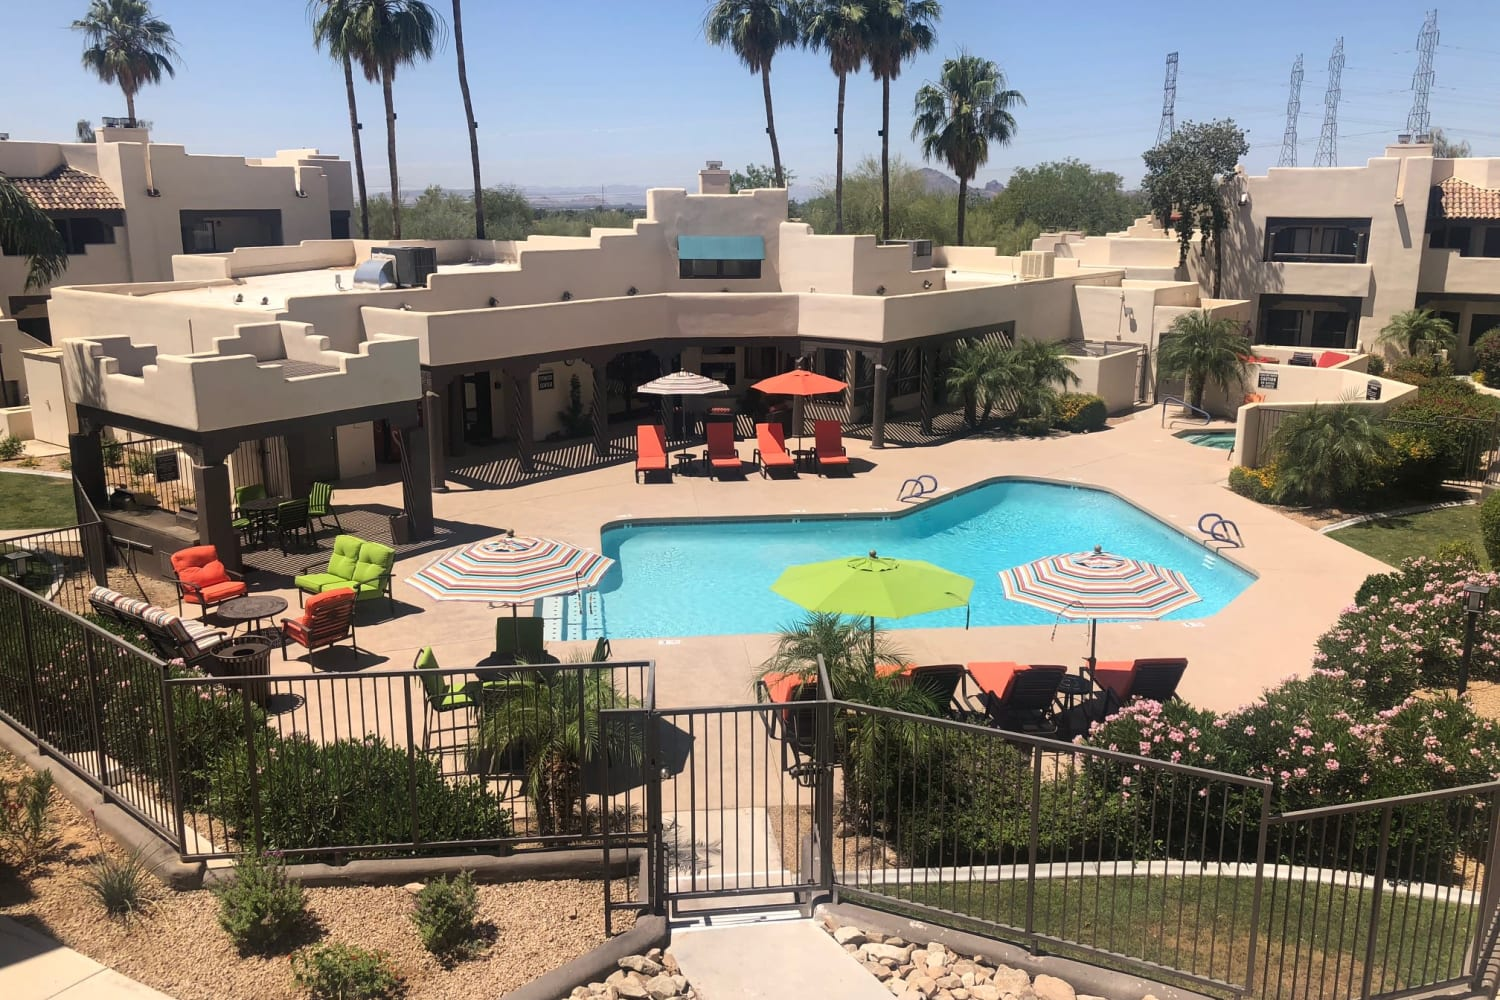 Aerial view of the pool area at Casa Santa Fe Apartments in Scottsdale, Arizona